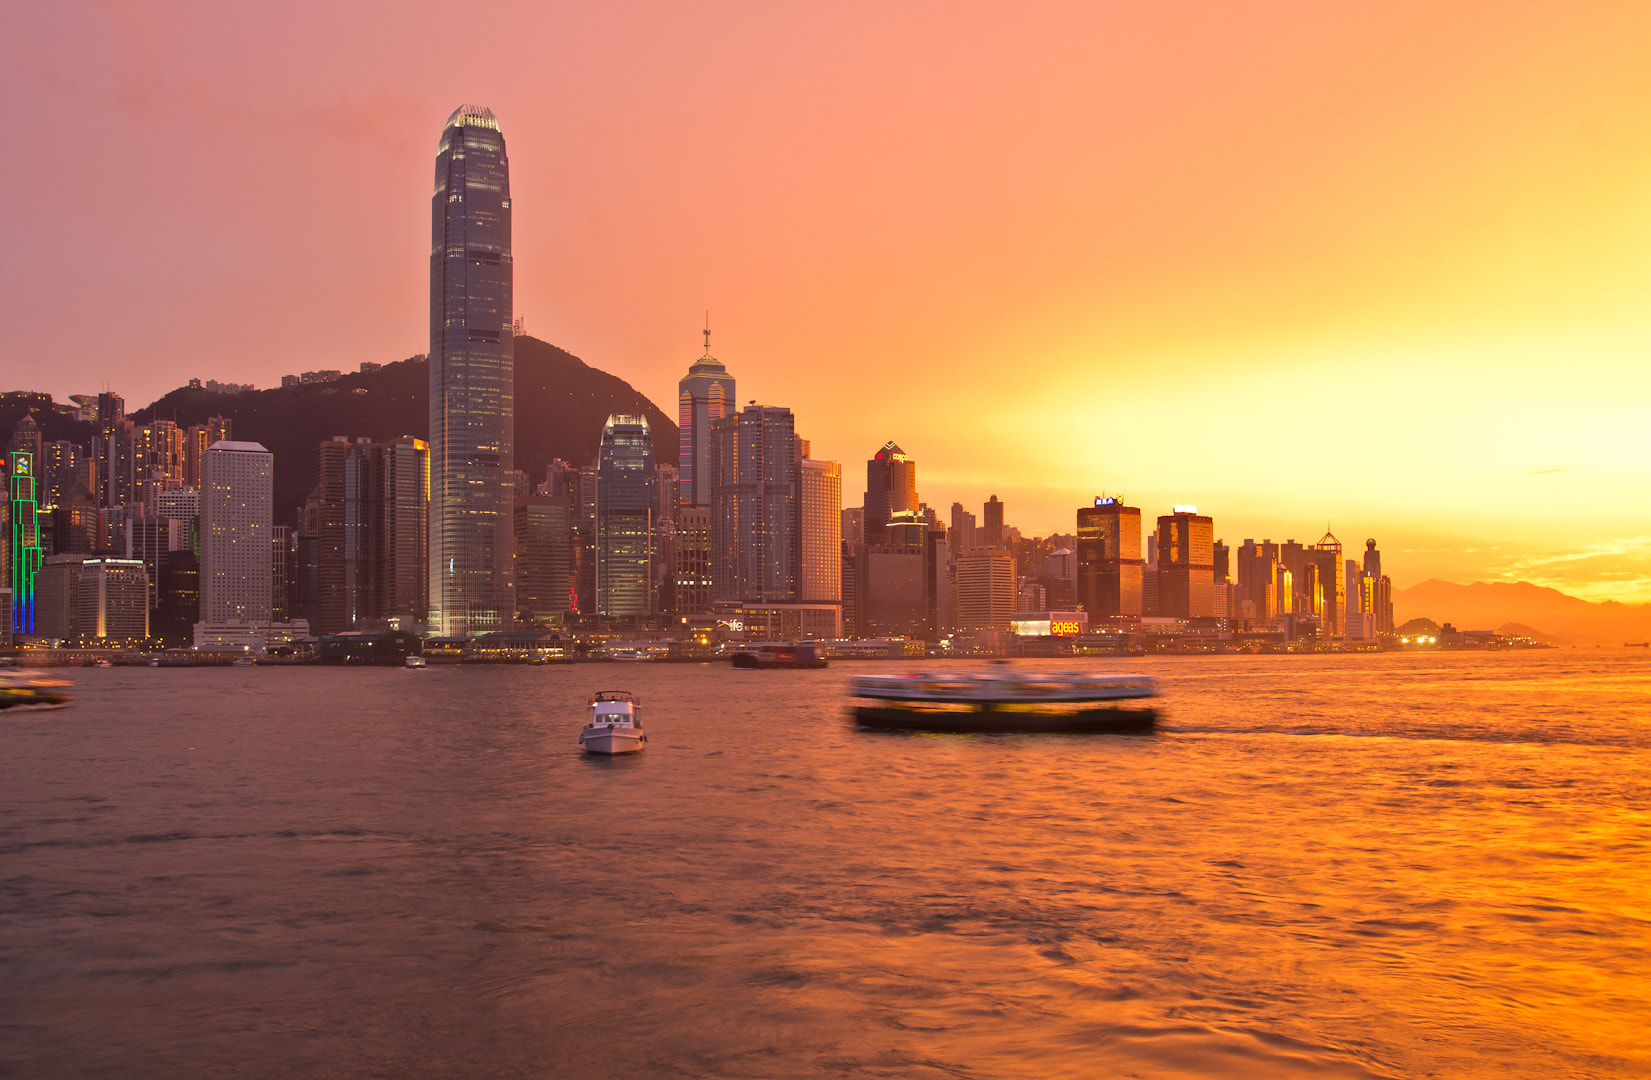 Photograph Hong Kong burning by David Kaiser on 500px